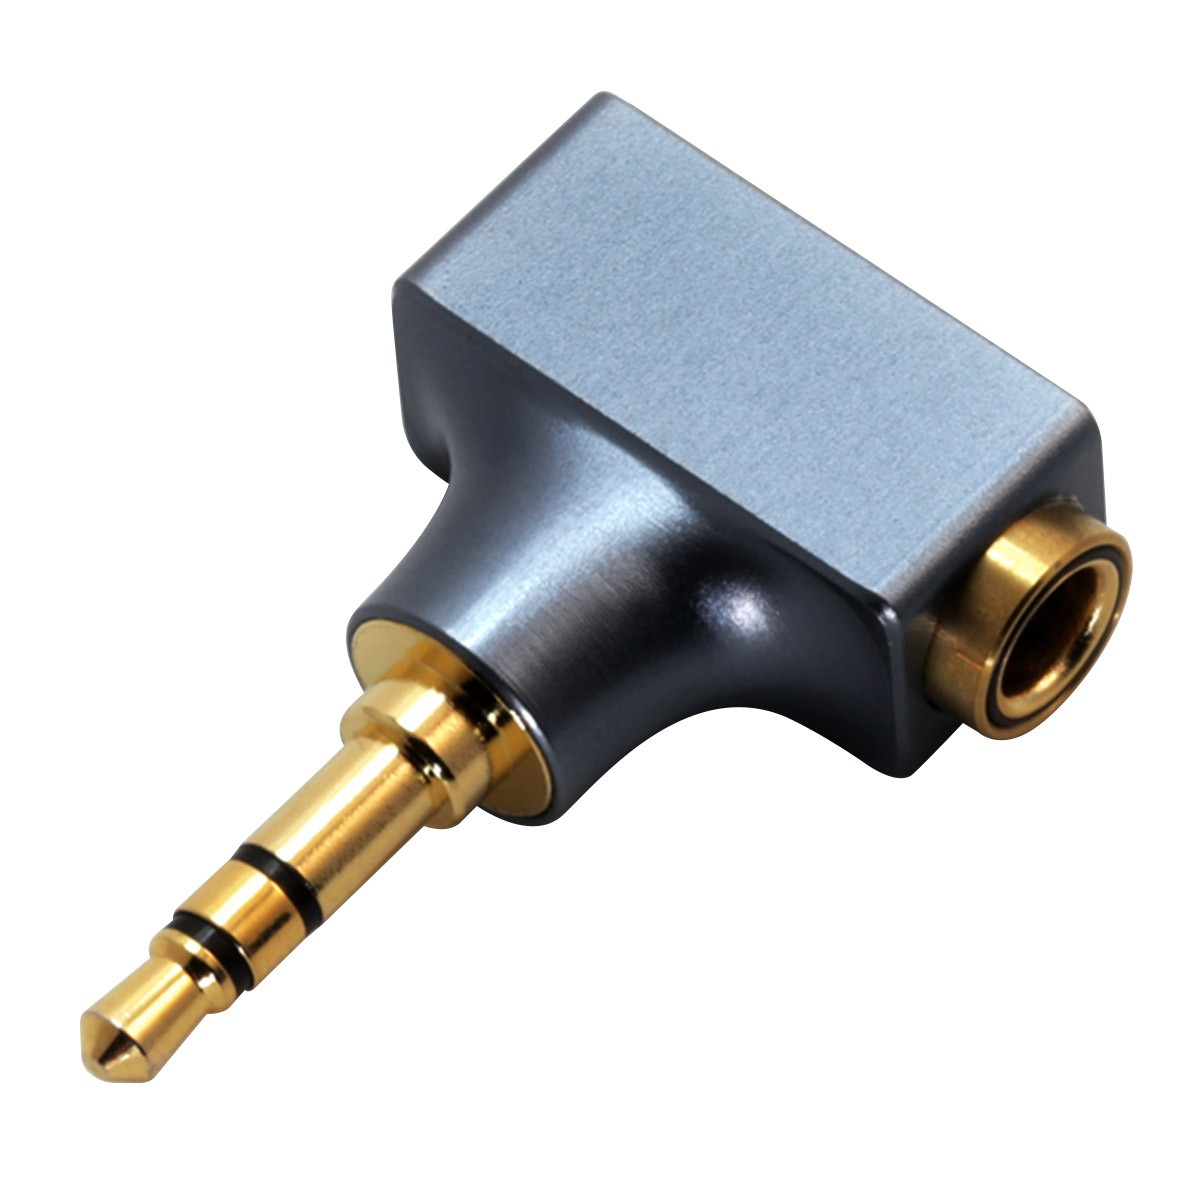 DD DJ44C MKII Female Balanced Jack 4.4mm to Male Single-Ended Jack 3.5mm Adapter Gold Plated